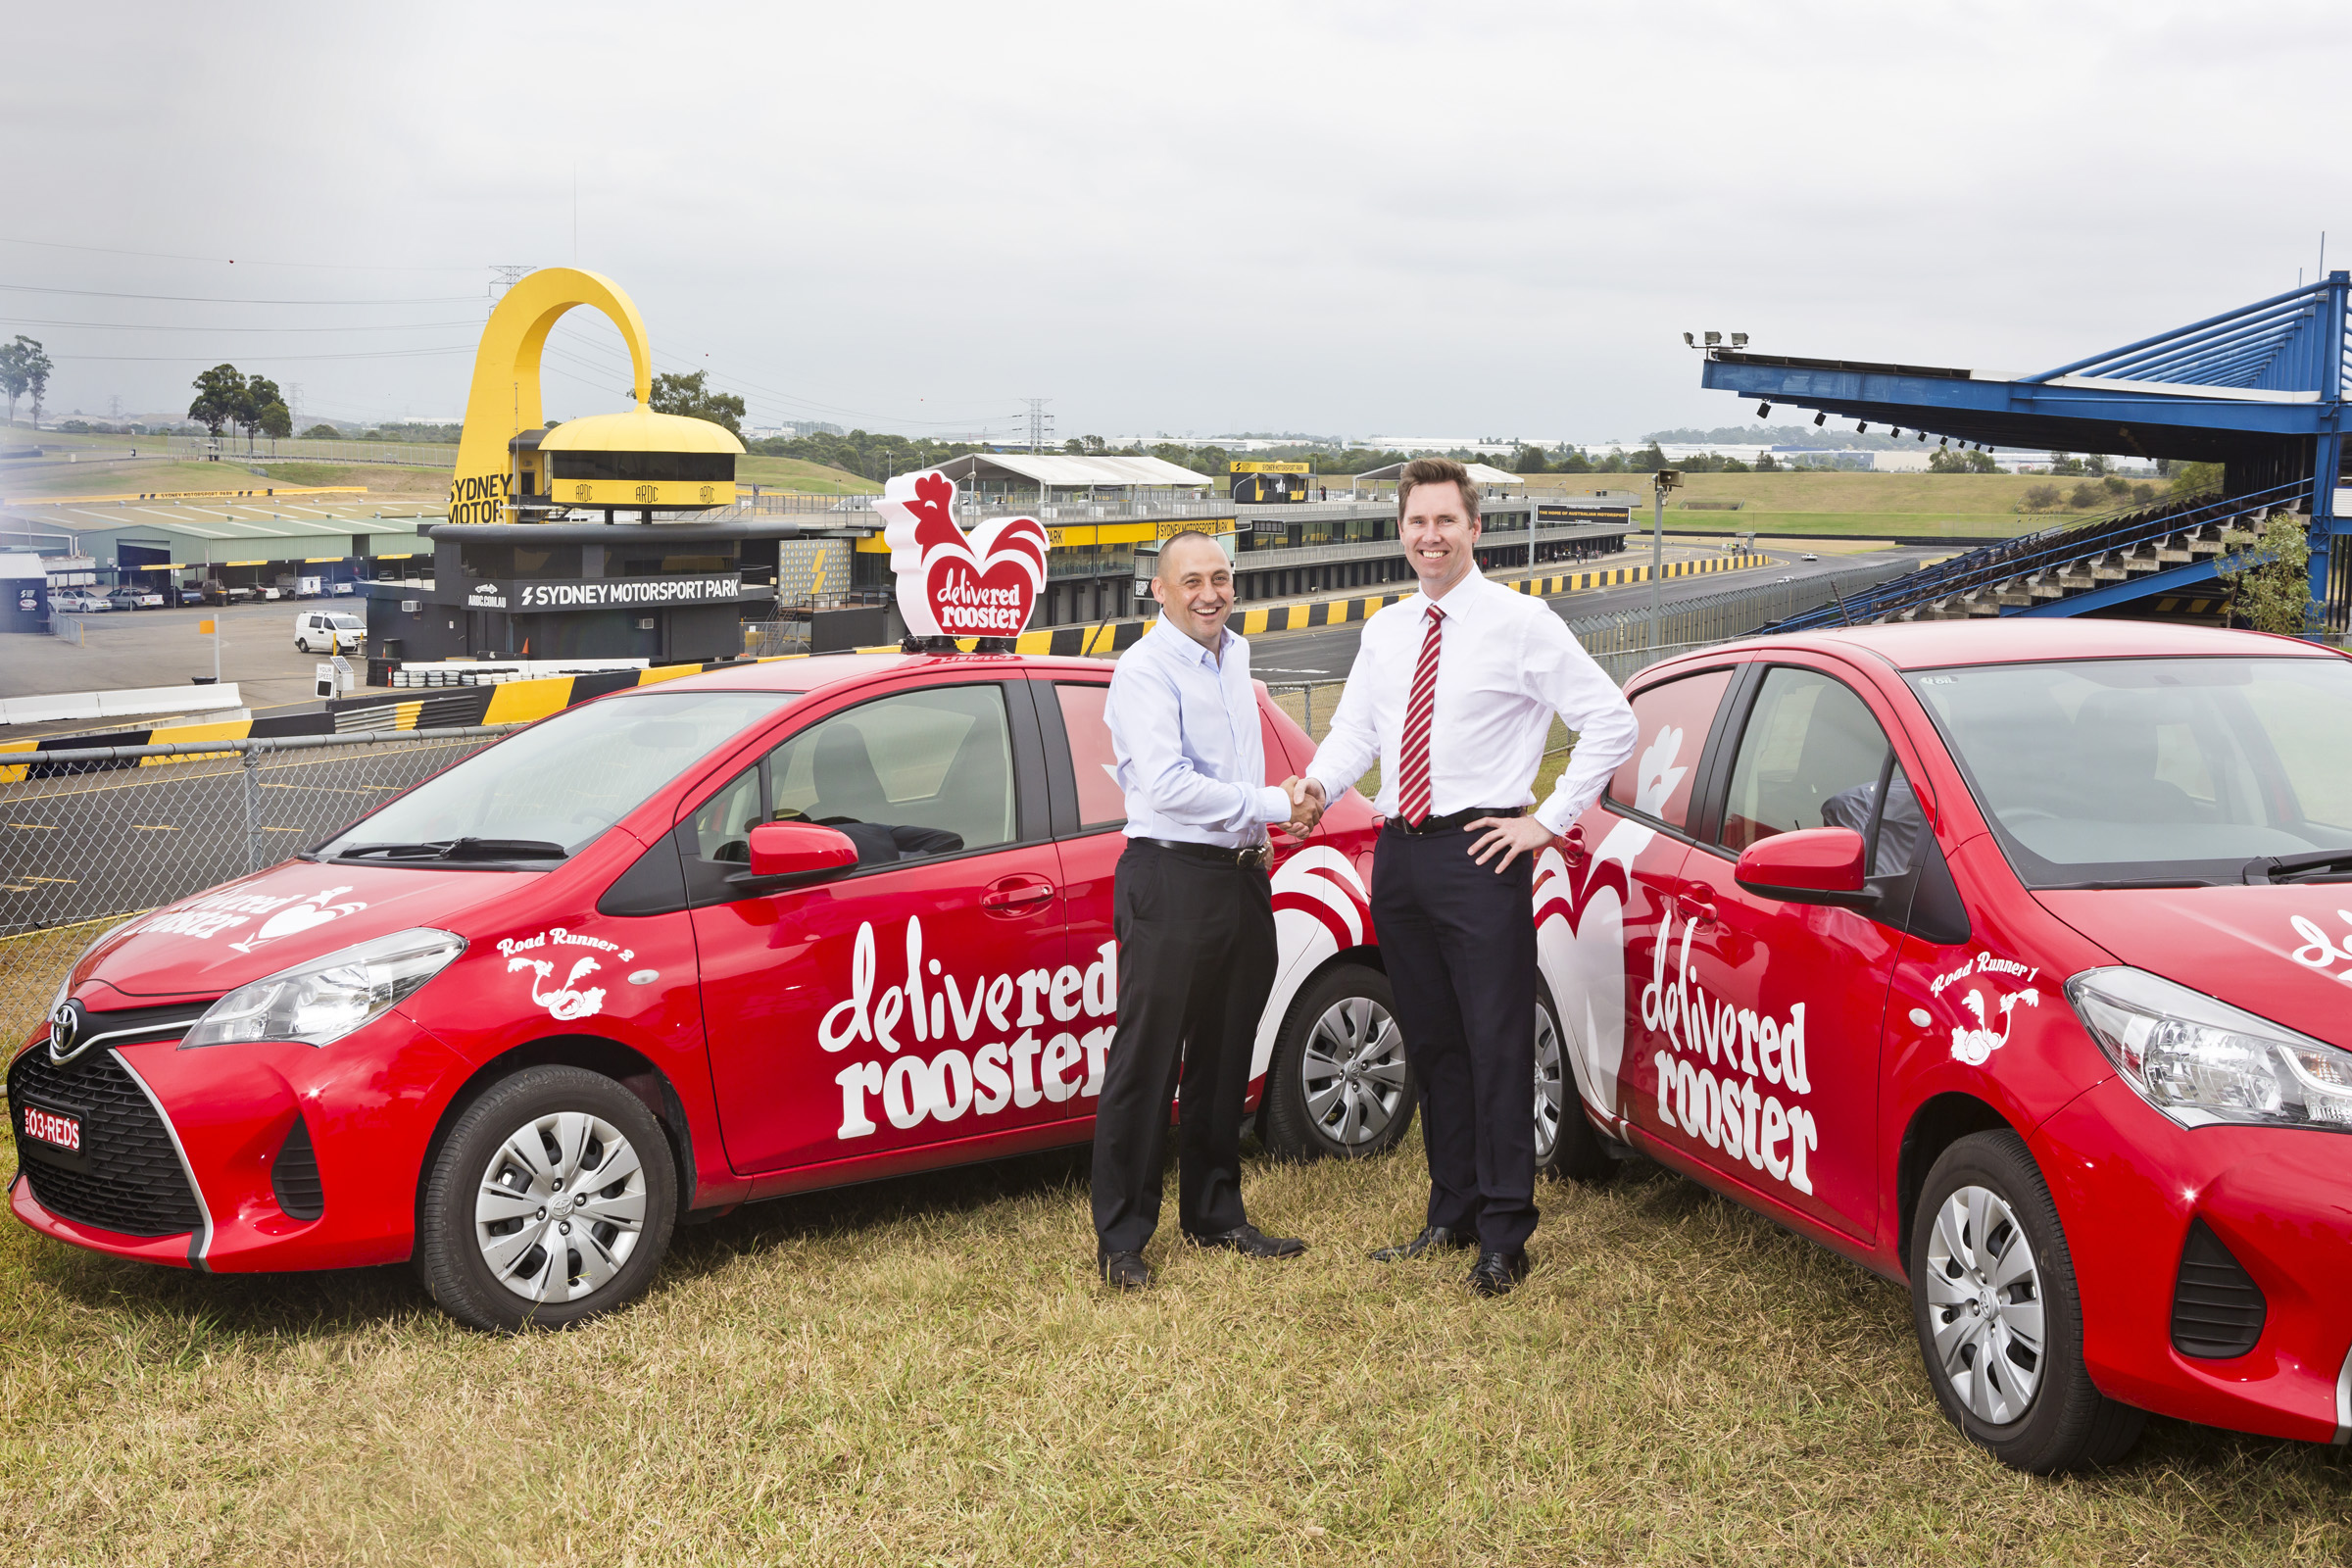 Red Rooster has signed a sponsorship deal with the V8s. Chris Green CEO of Red Rooster and Matt Braid Managing Director of V8s. Photo by Sarah Keayes